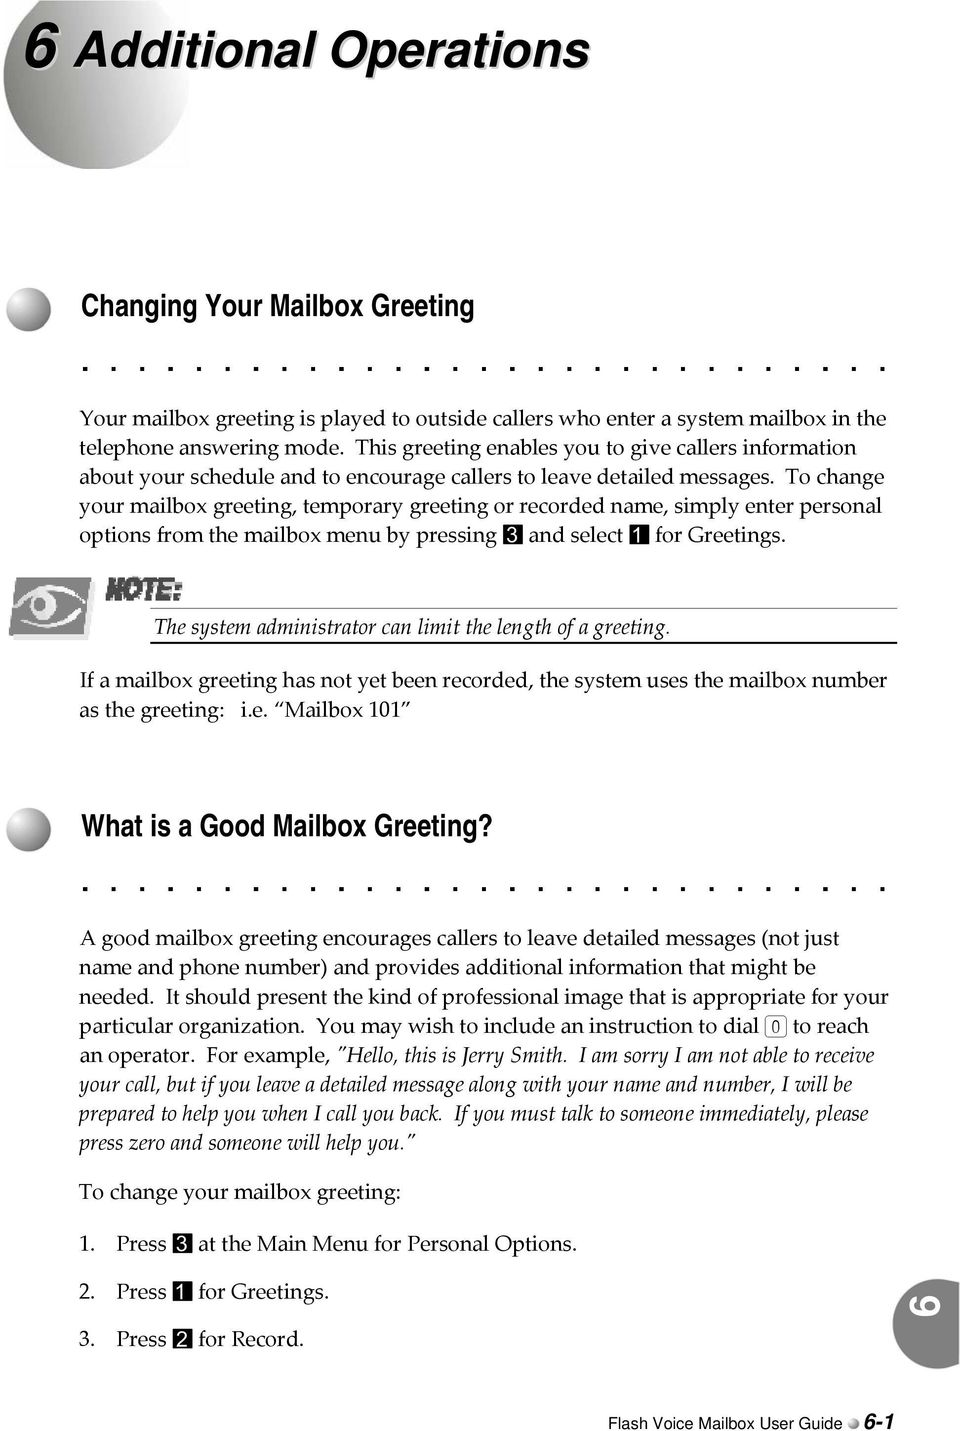 To change your mailbox greeting, temporary greeting or recorded name, simply enter personal options from the mailbox menu by pressing 3 and select 1 for Greetings.